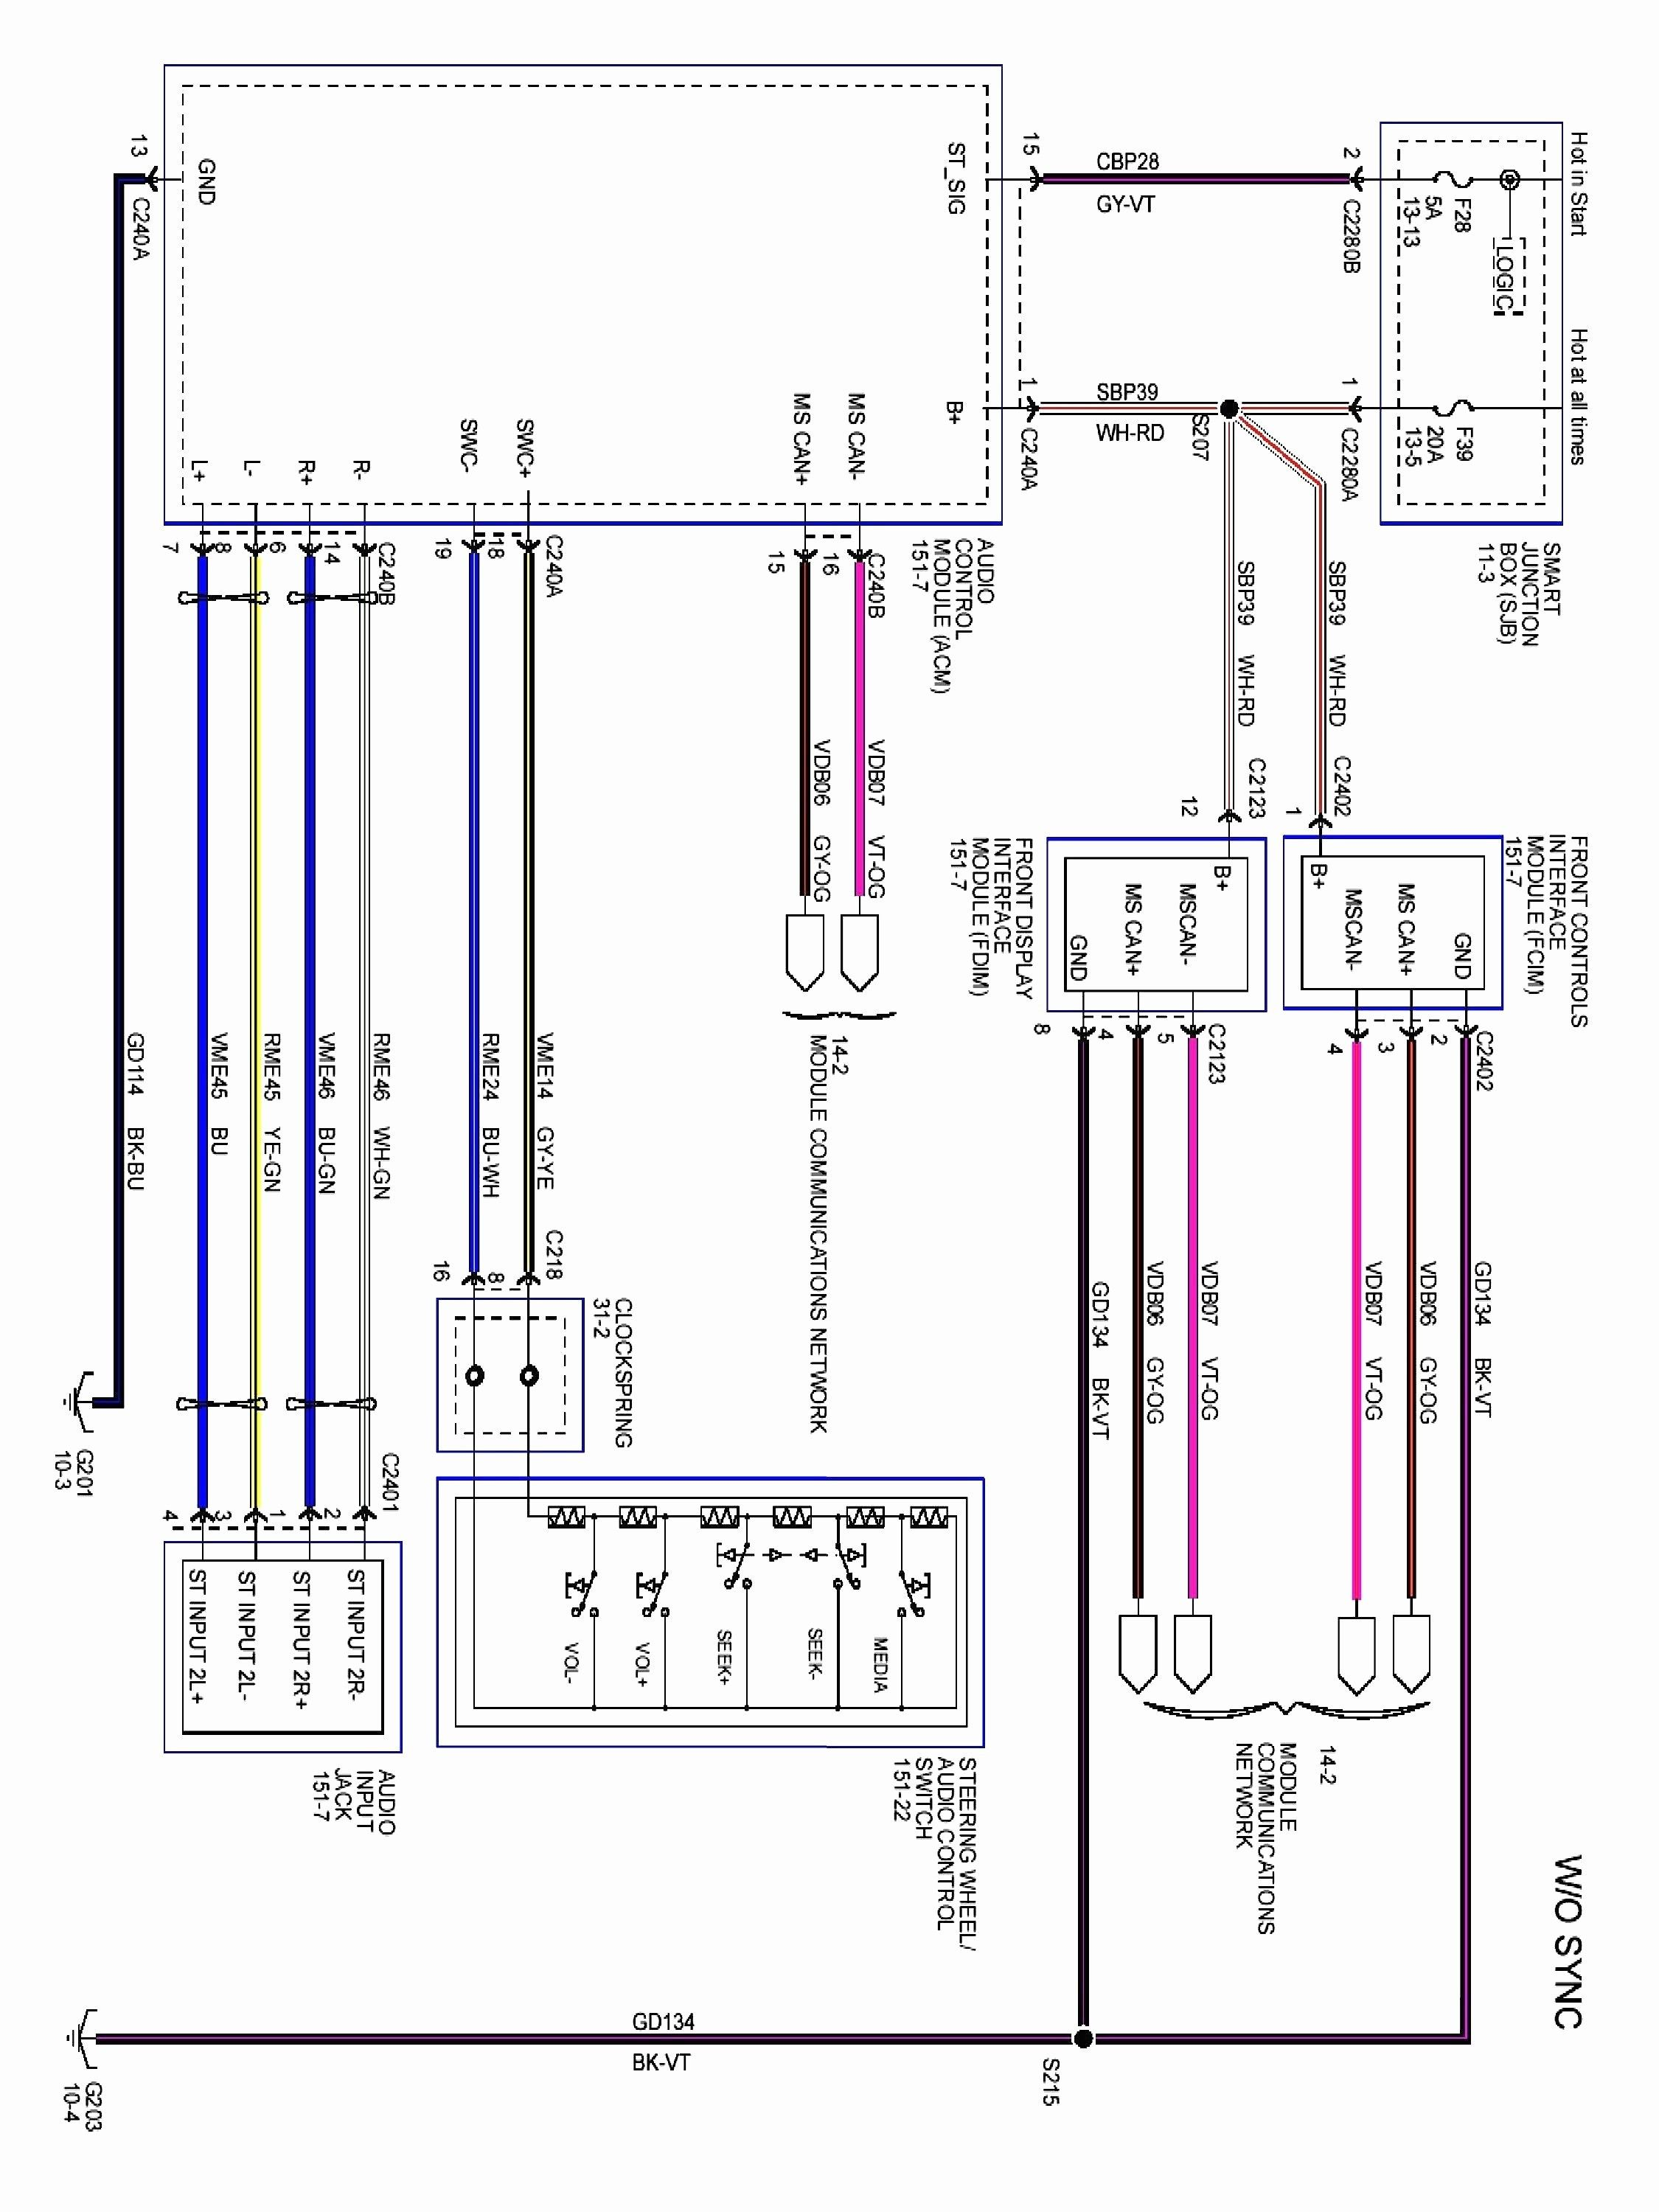 Double Din Wiring Diagram Unique In 2020 Diagram Electrical Wiring Diagram Truck Stereo